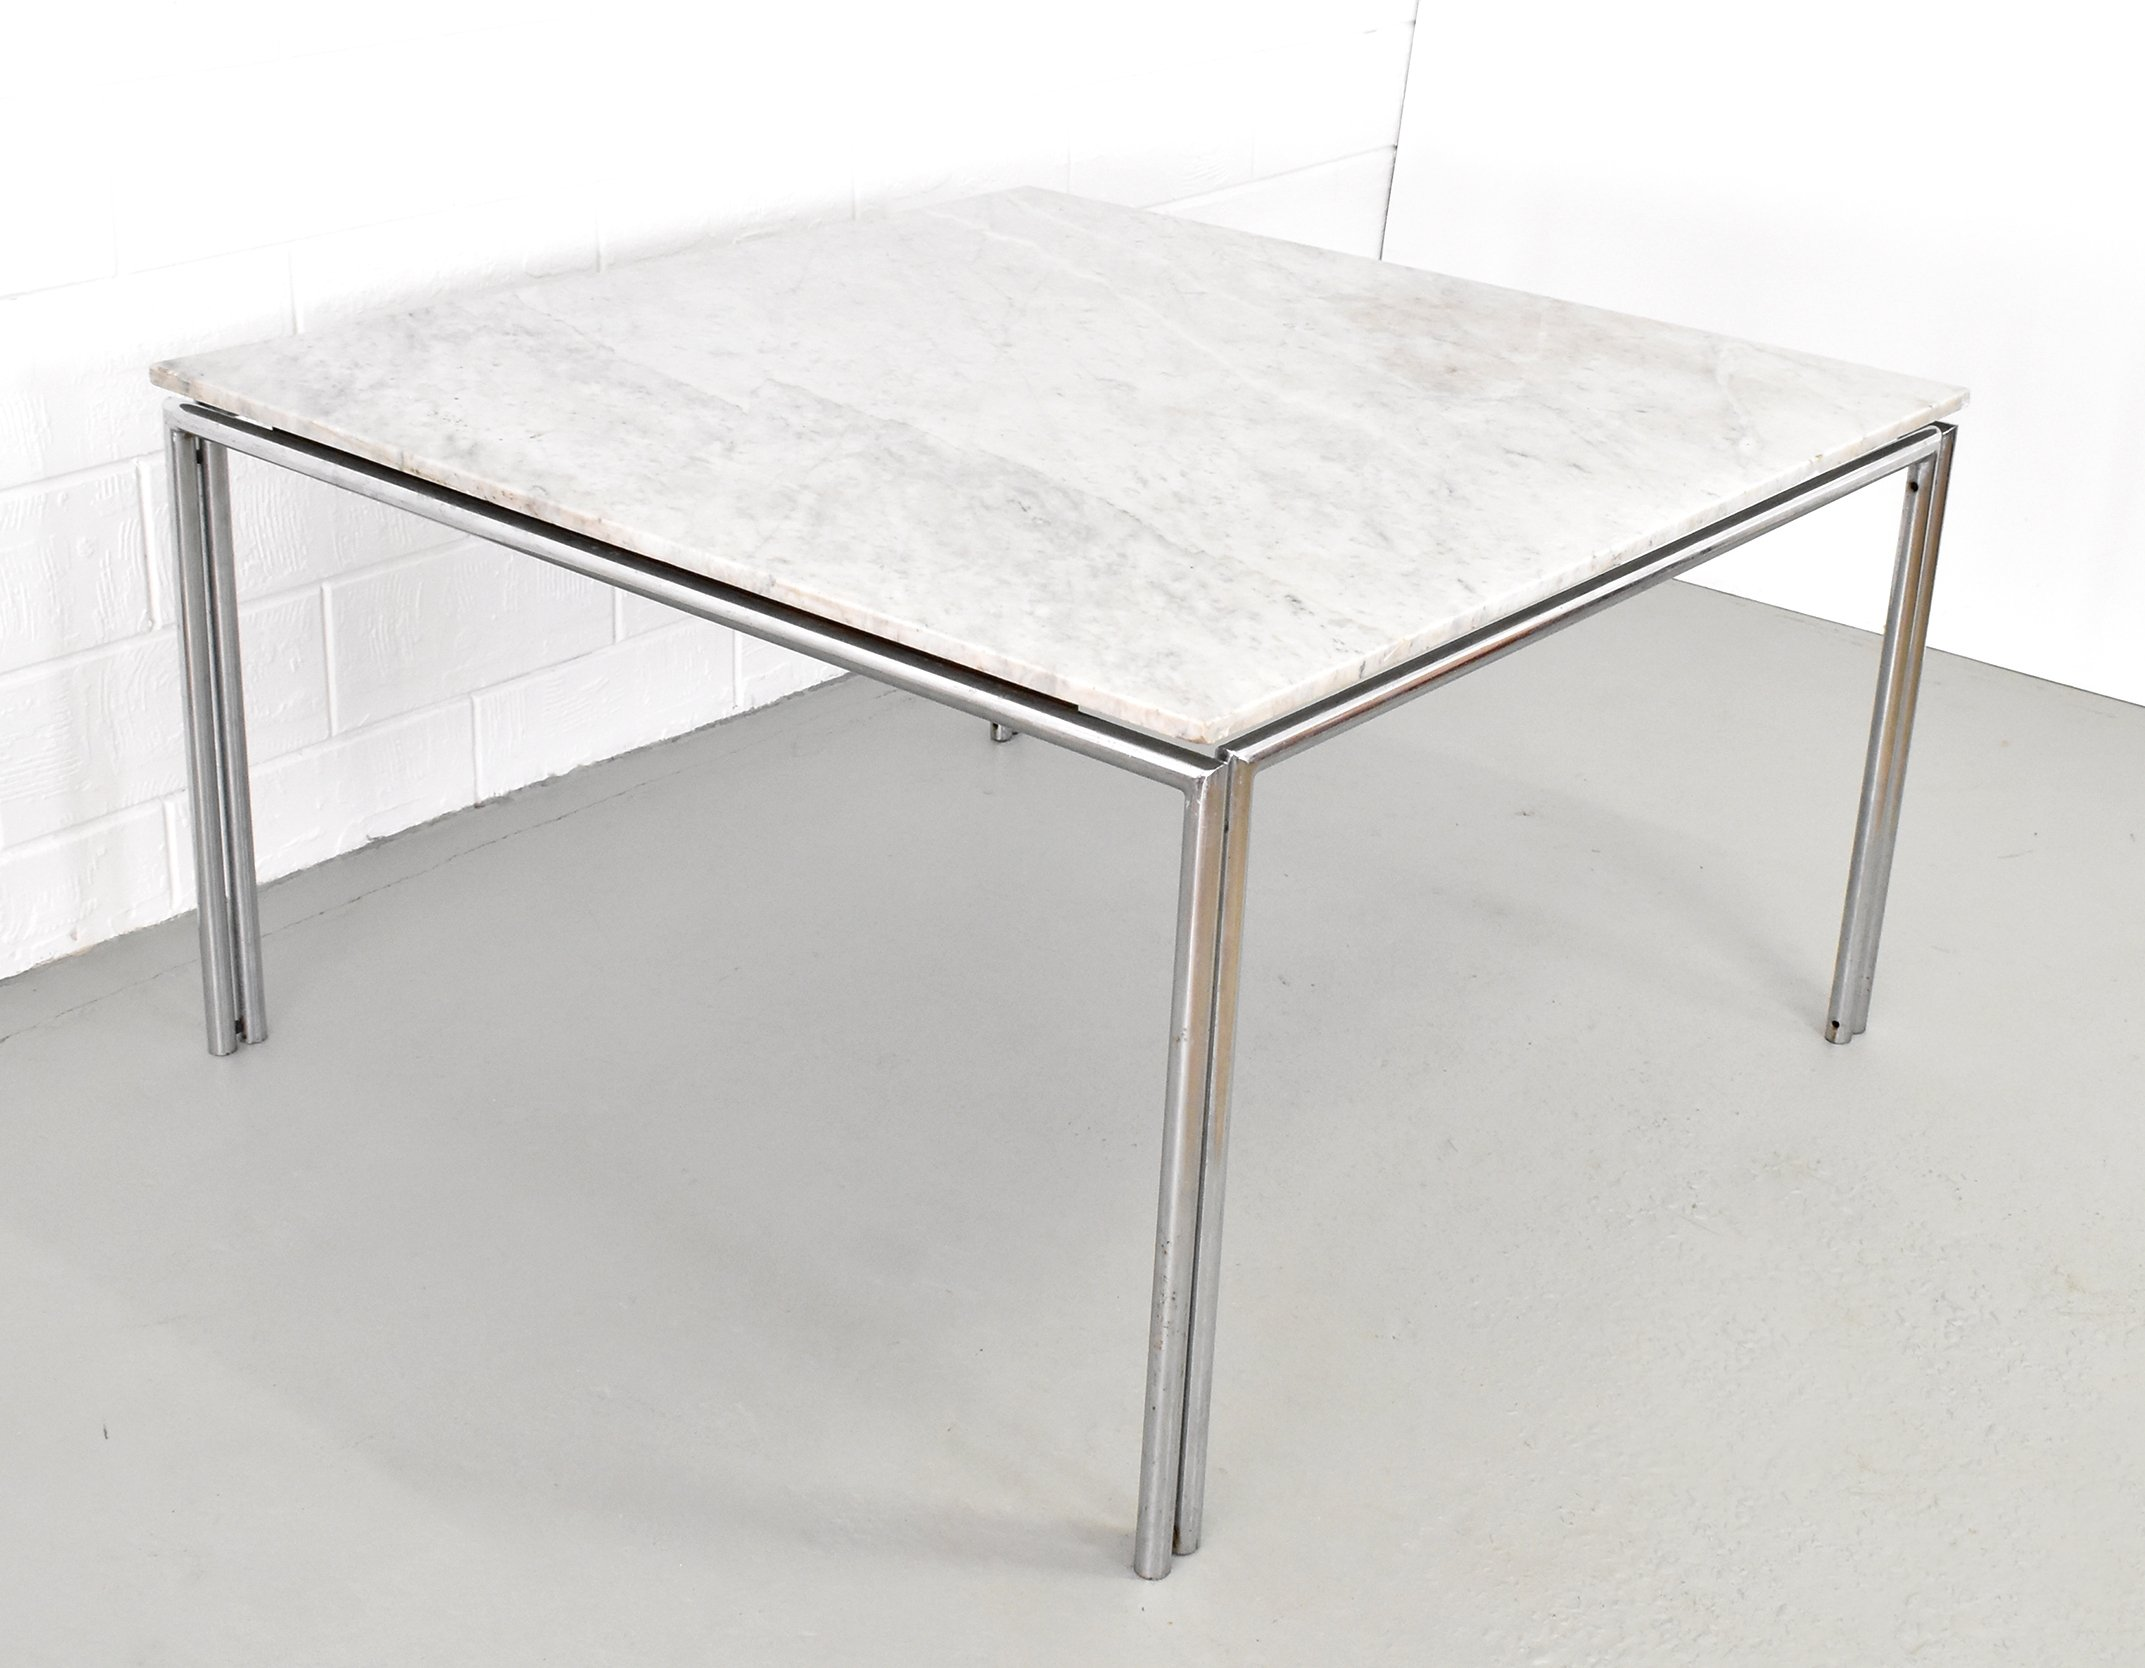 Xxl Square Marble Dining Table With Chrome Steel Base 76655